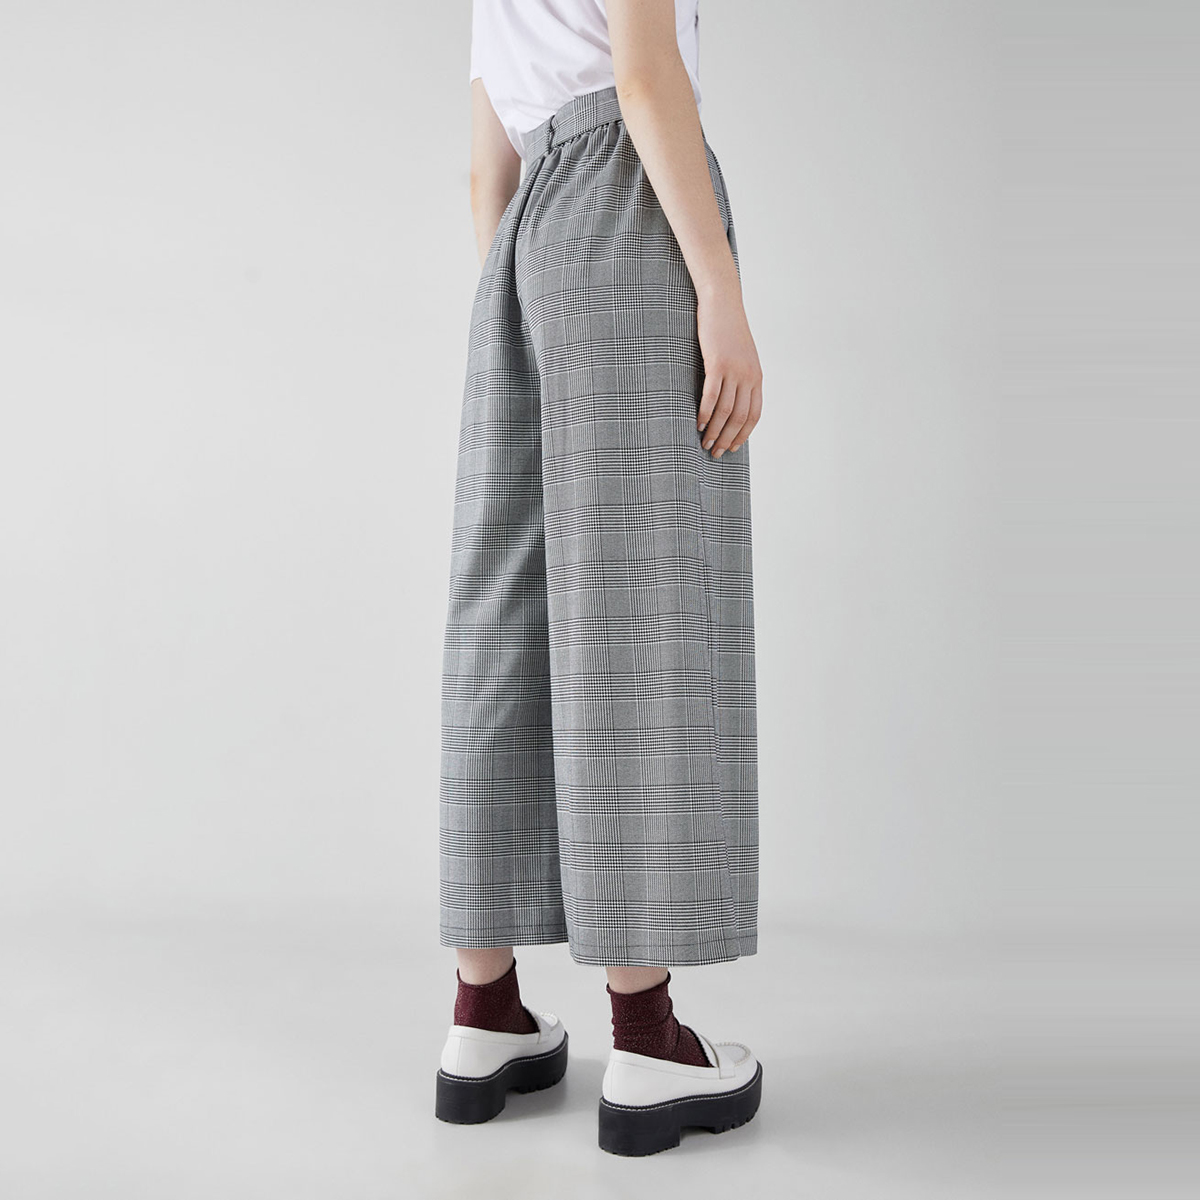 HDY Haoduoyi High Waist Slim Waistband Gray PlaidNine Points Pleated WideTube Pants in Pants amp Capris from Women 39 s Clothing